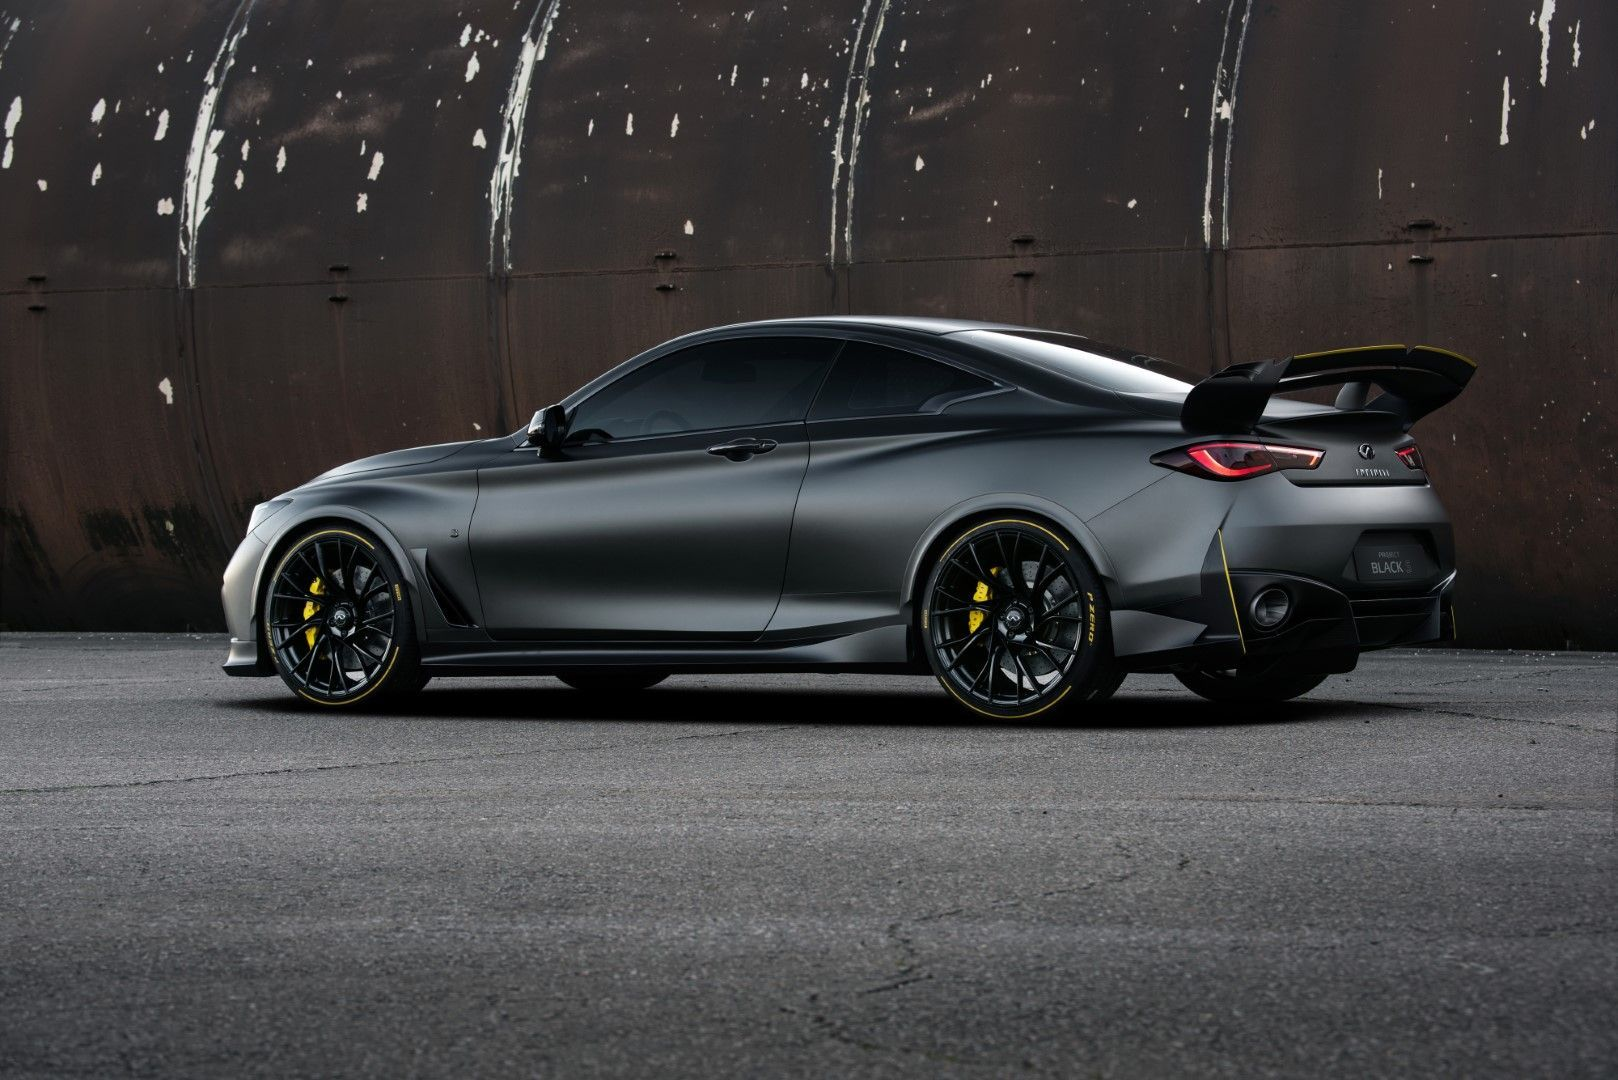 Infiniti Project Black S concept introduced at the 2018